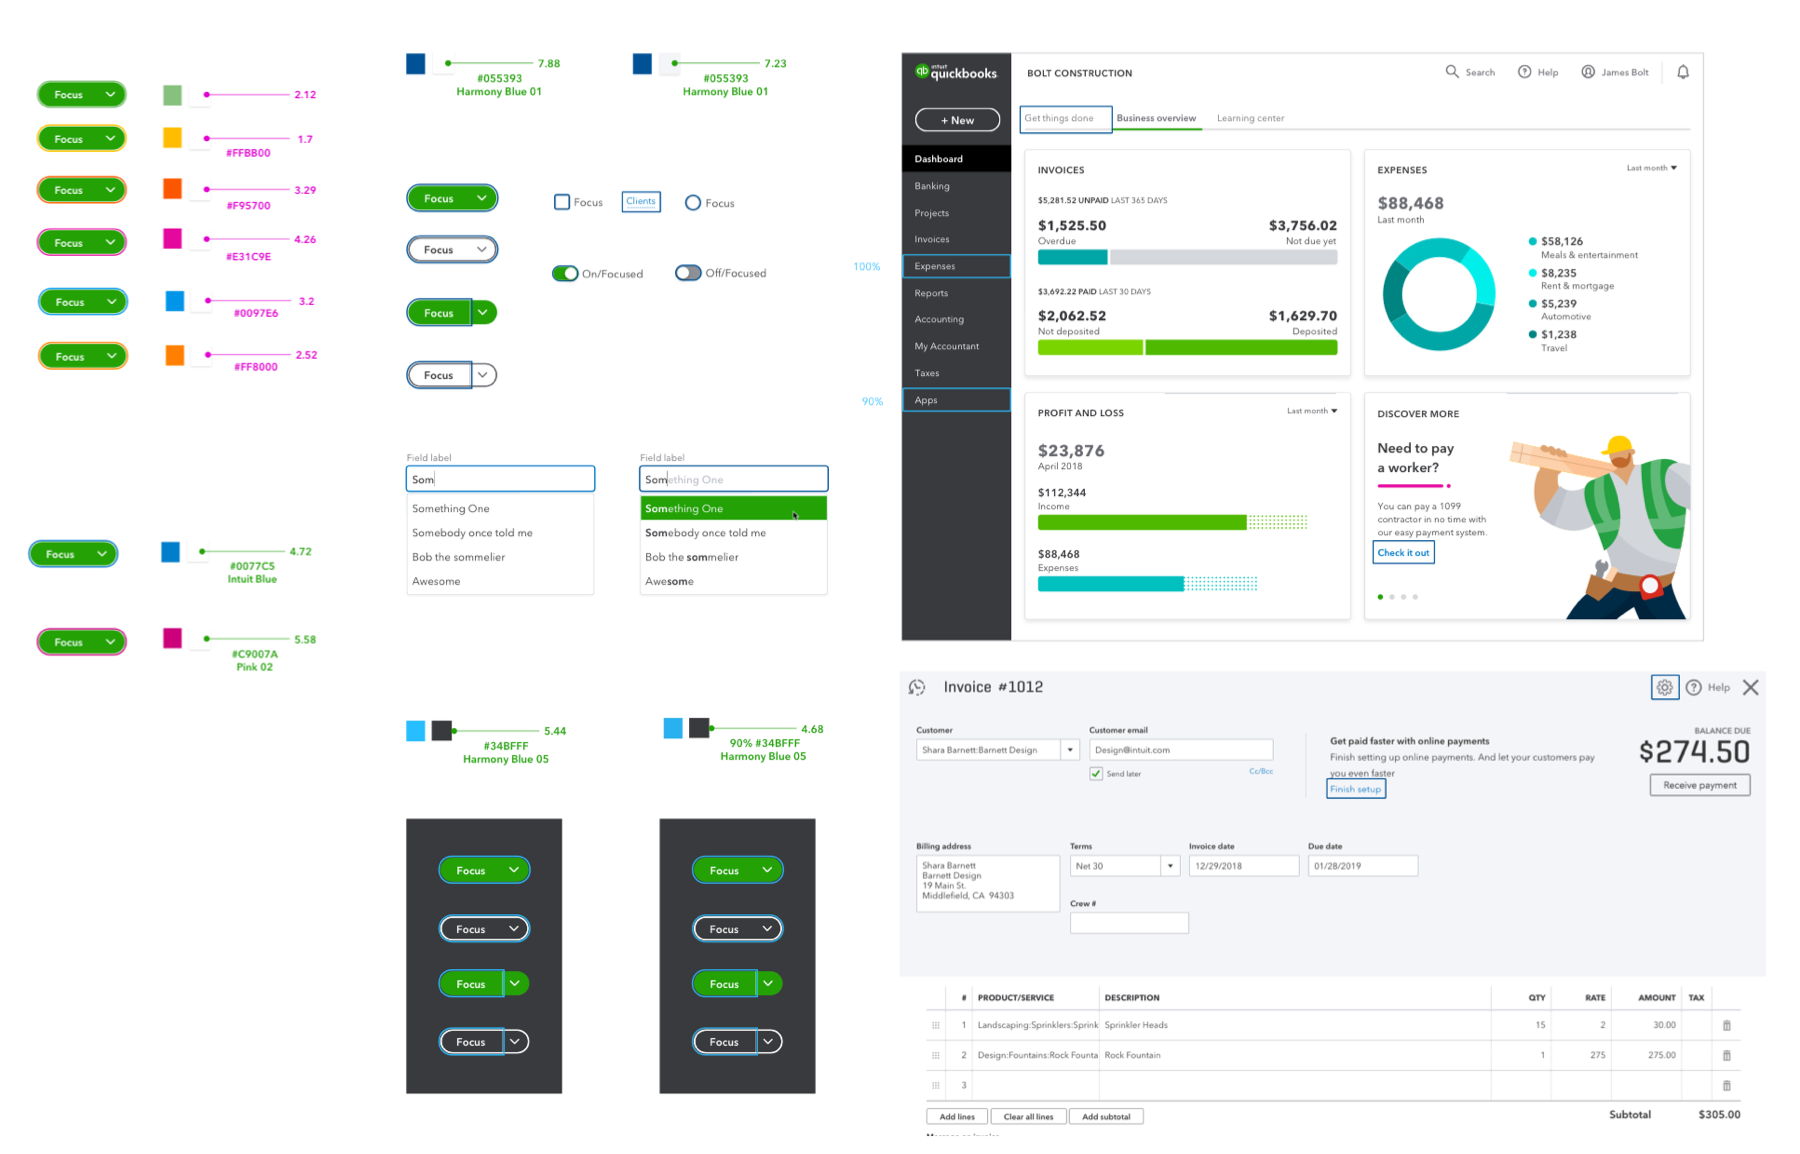 Visual exploration of placing the visual indicator on buttons and QuickBooks page